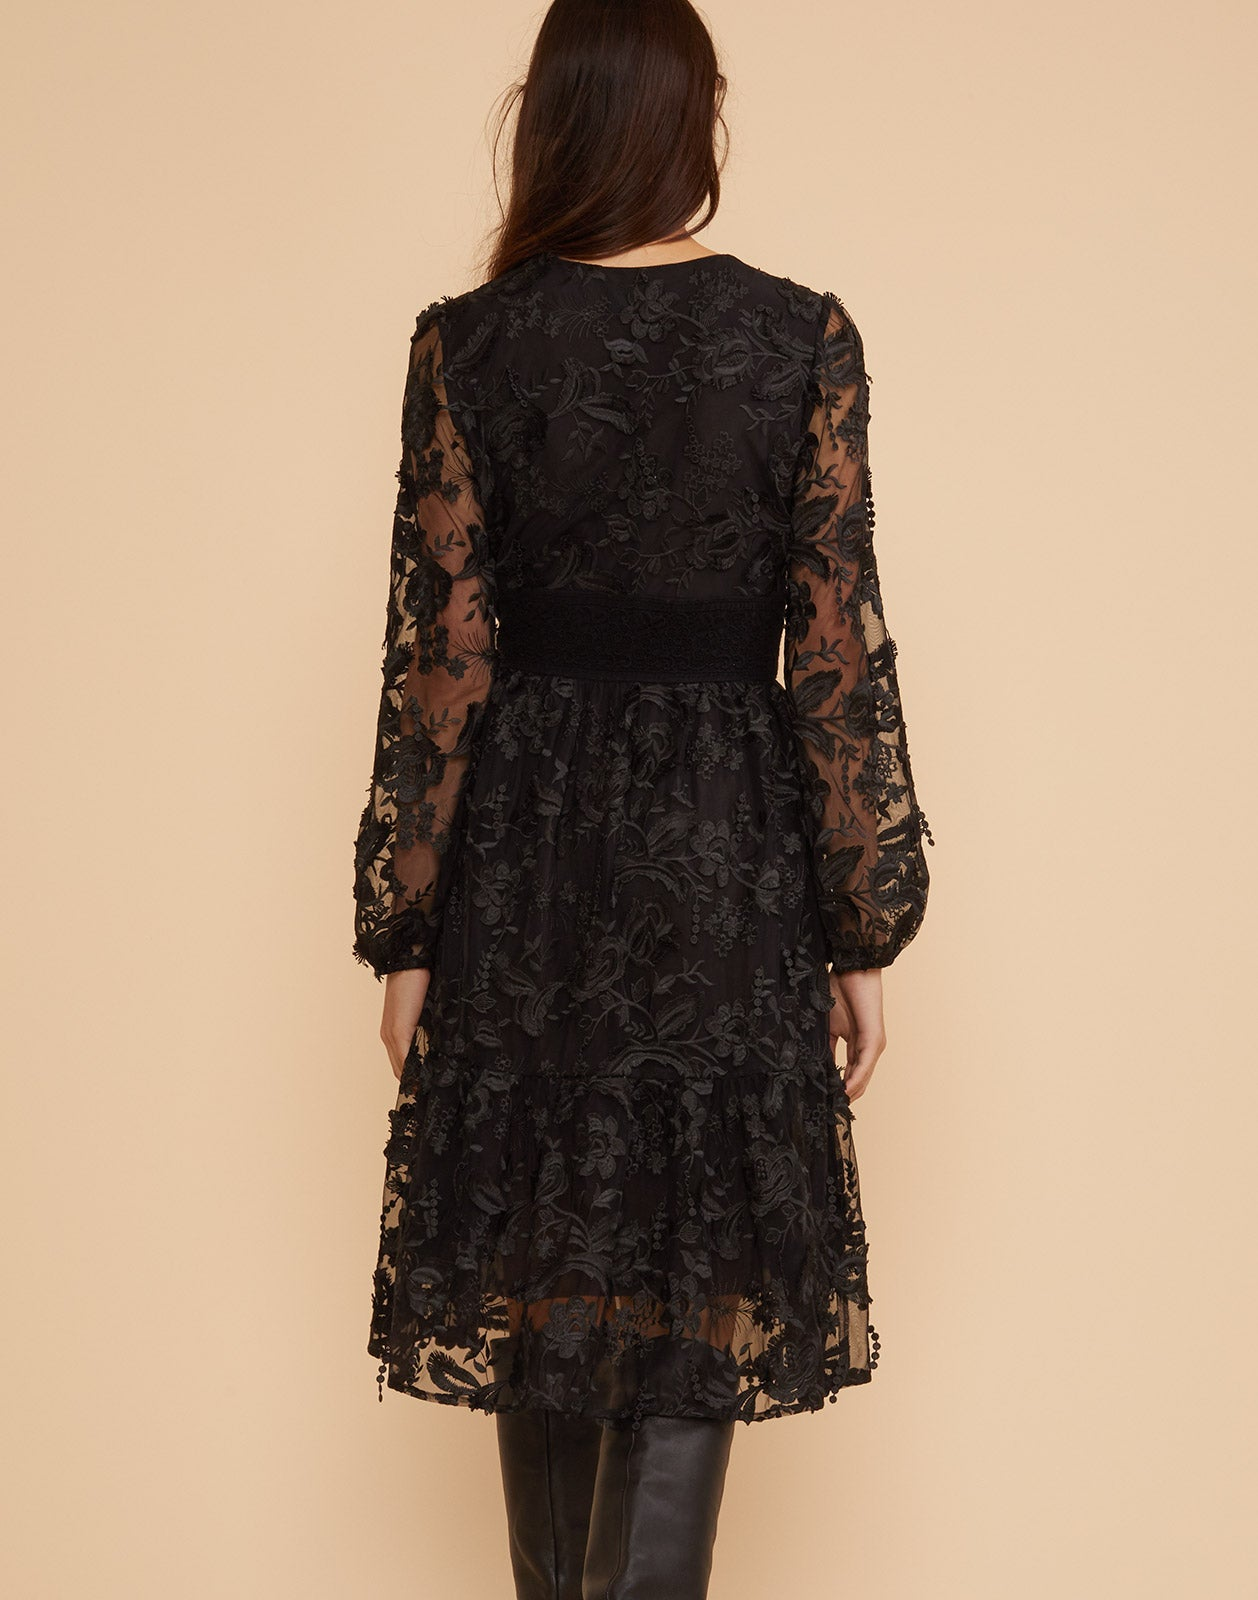 Back view of the harlow black lace dress with neck tie detail.